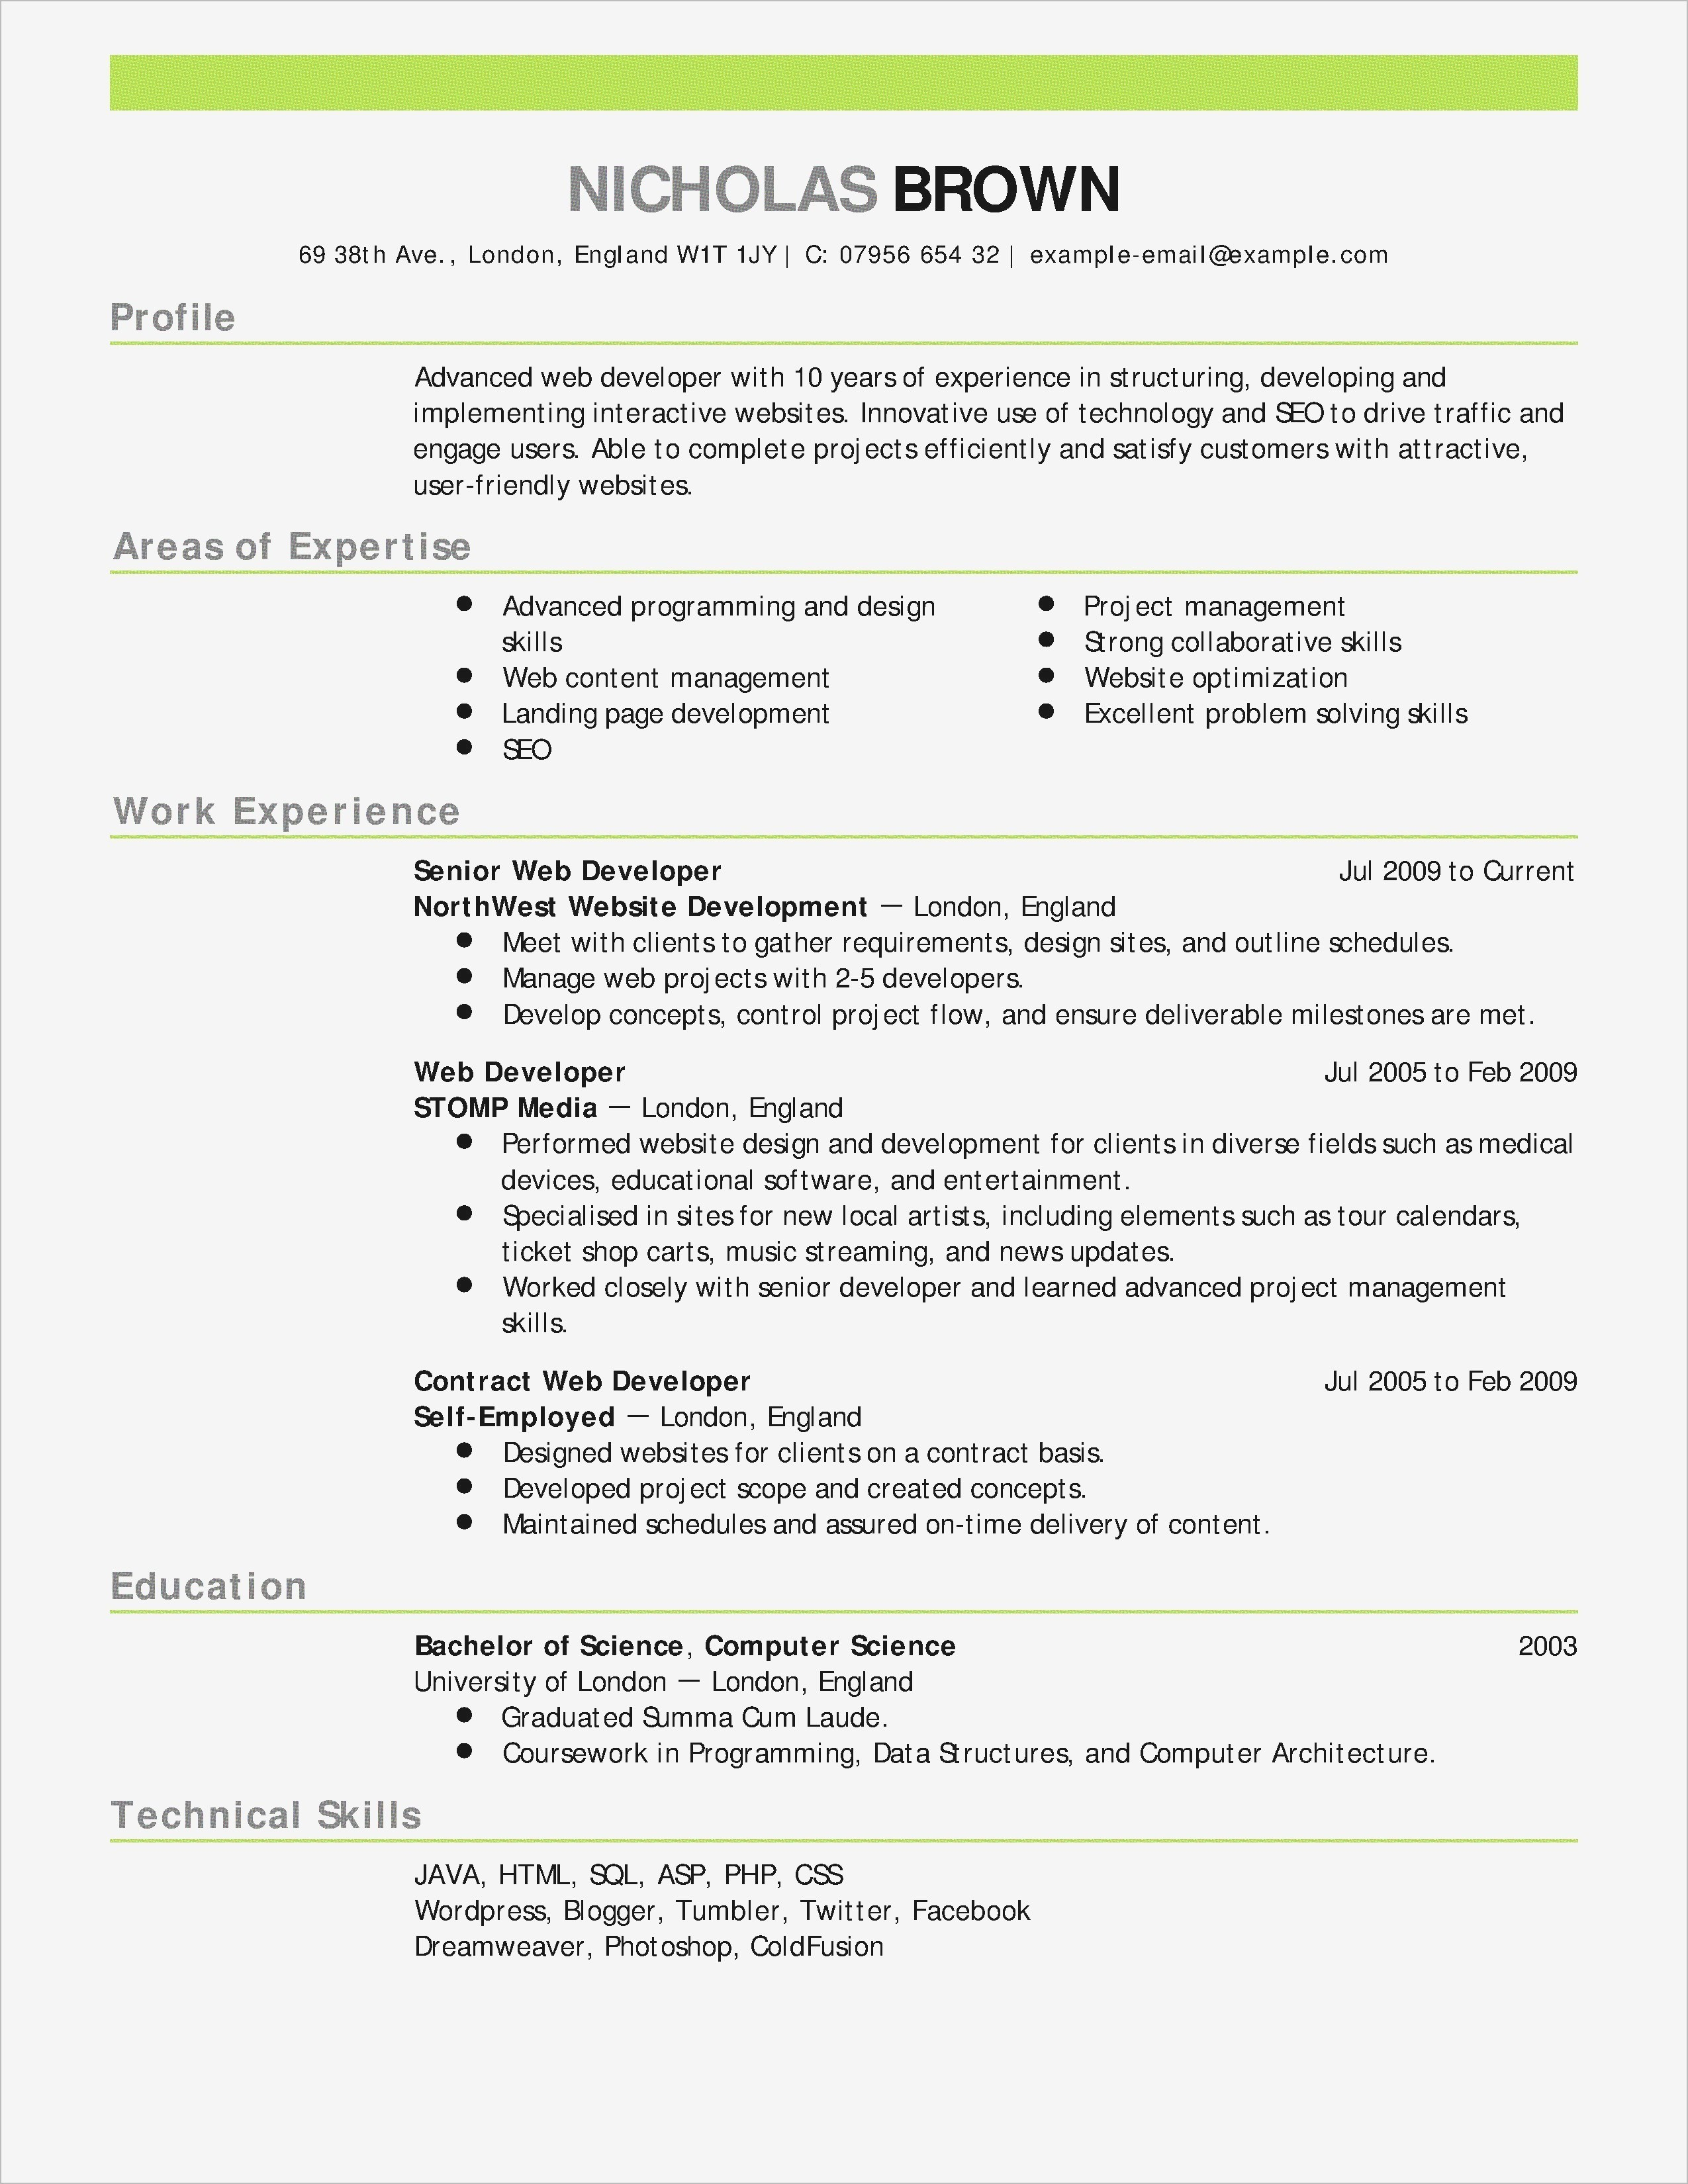 teacher resume skills example-Resume Template Microsoft Word Valid Resume In Word Fresh Awesome Examples Resumes Ecologist Resume 0d 2-l